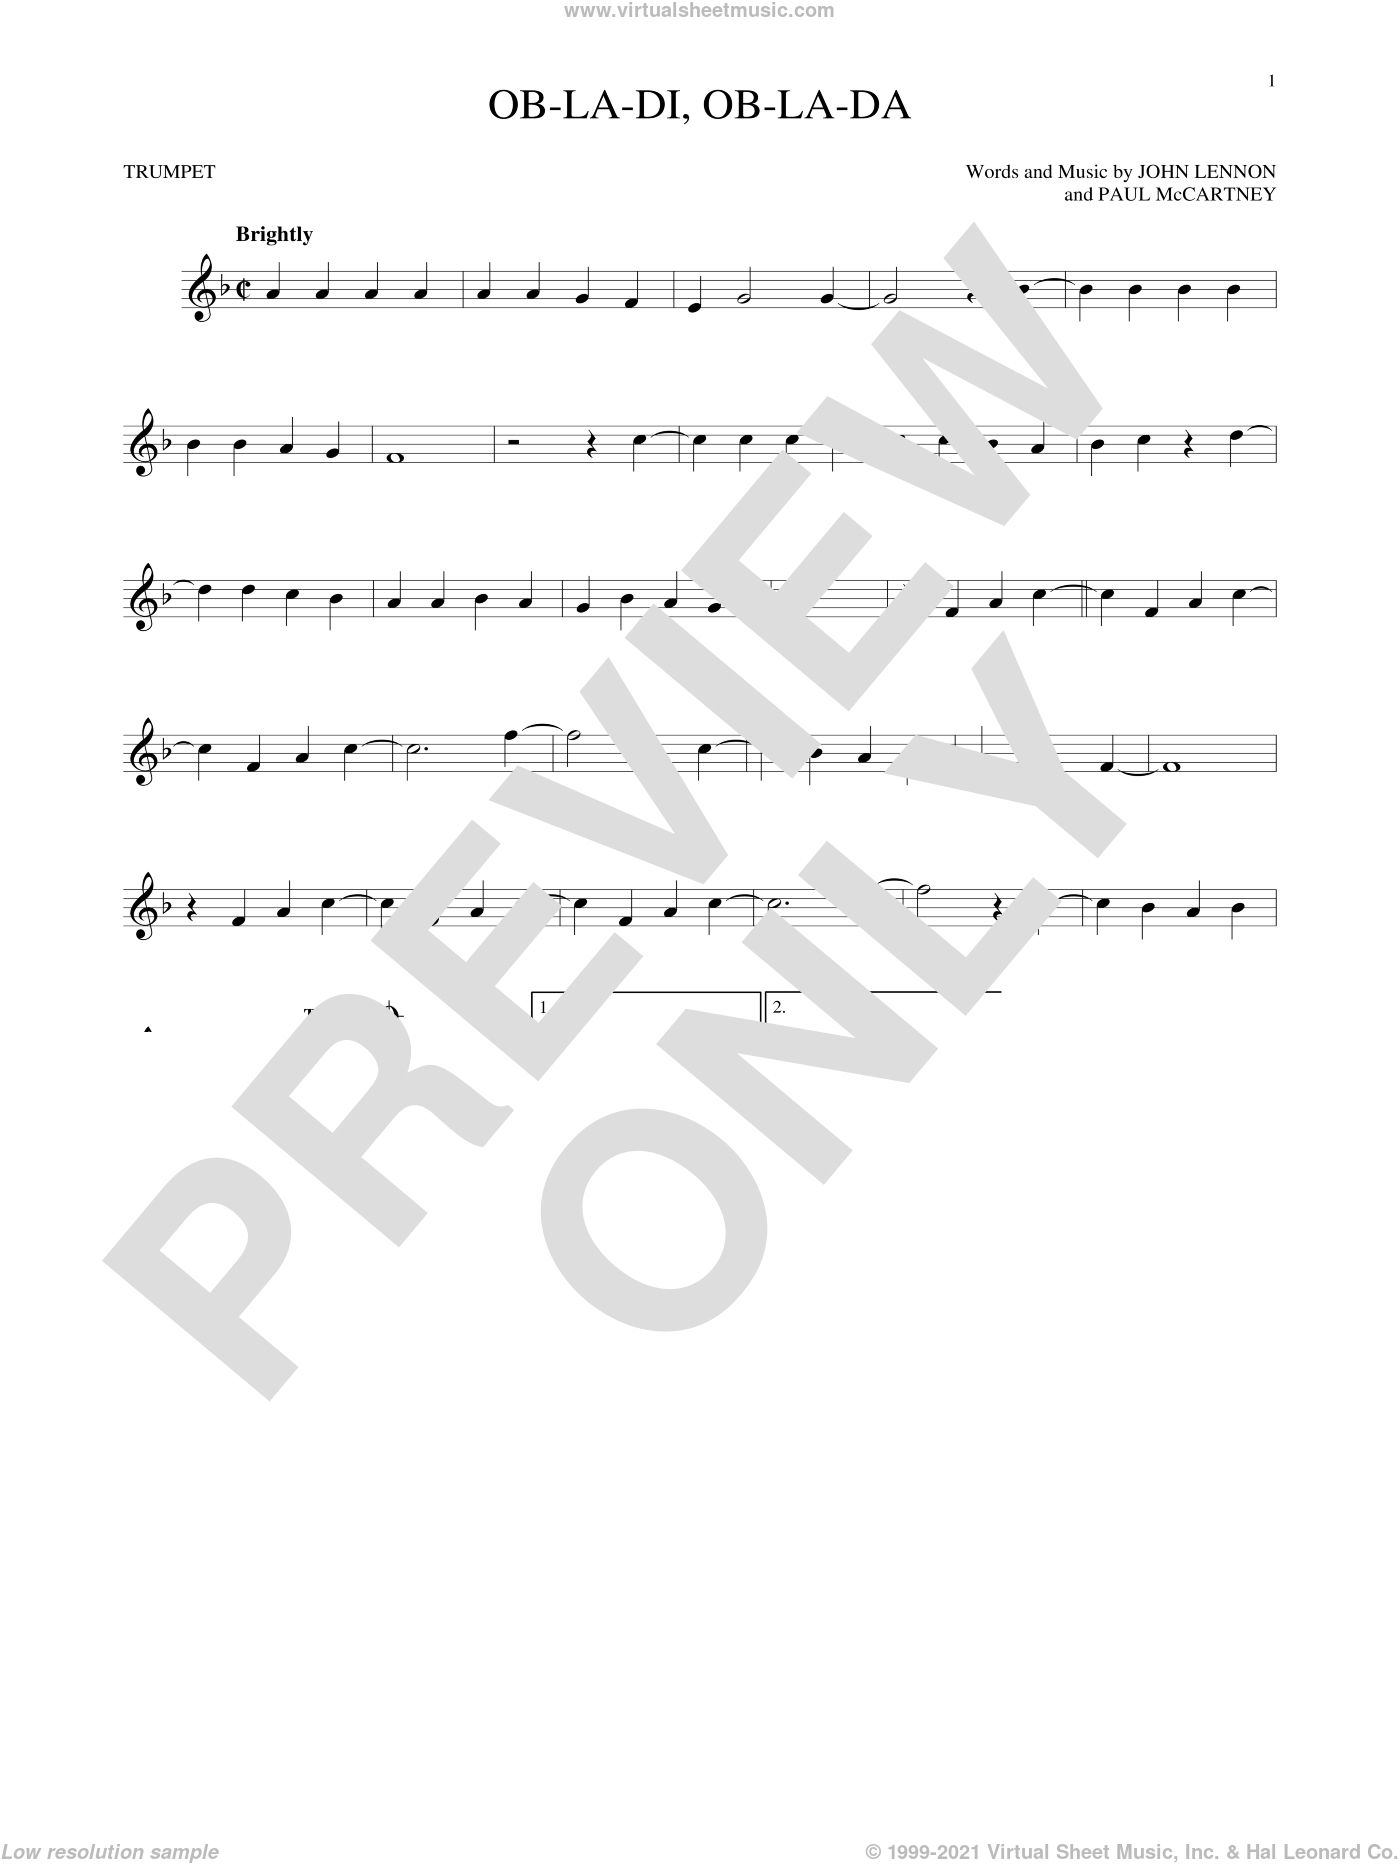 Ob-La-Di, Ob-La-Da sheet music for trumpet solo by The Beatles, John Lennon and Paul McCartney, intermediate skill level